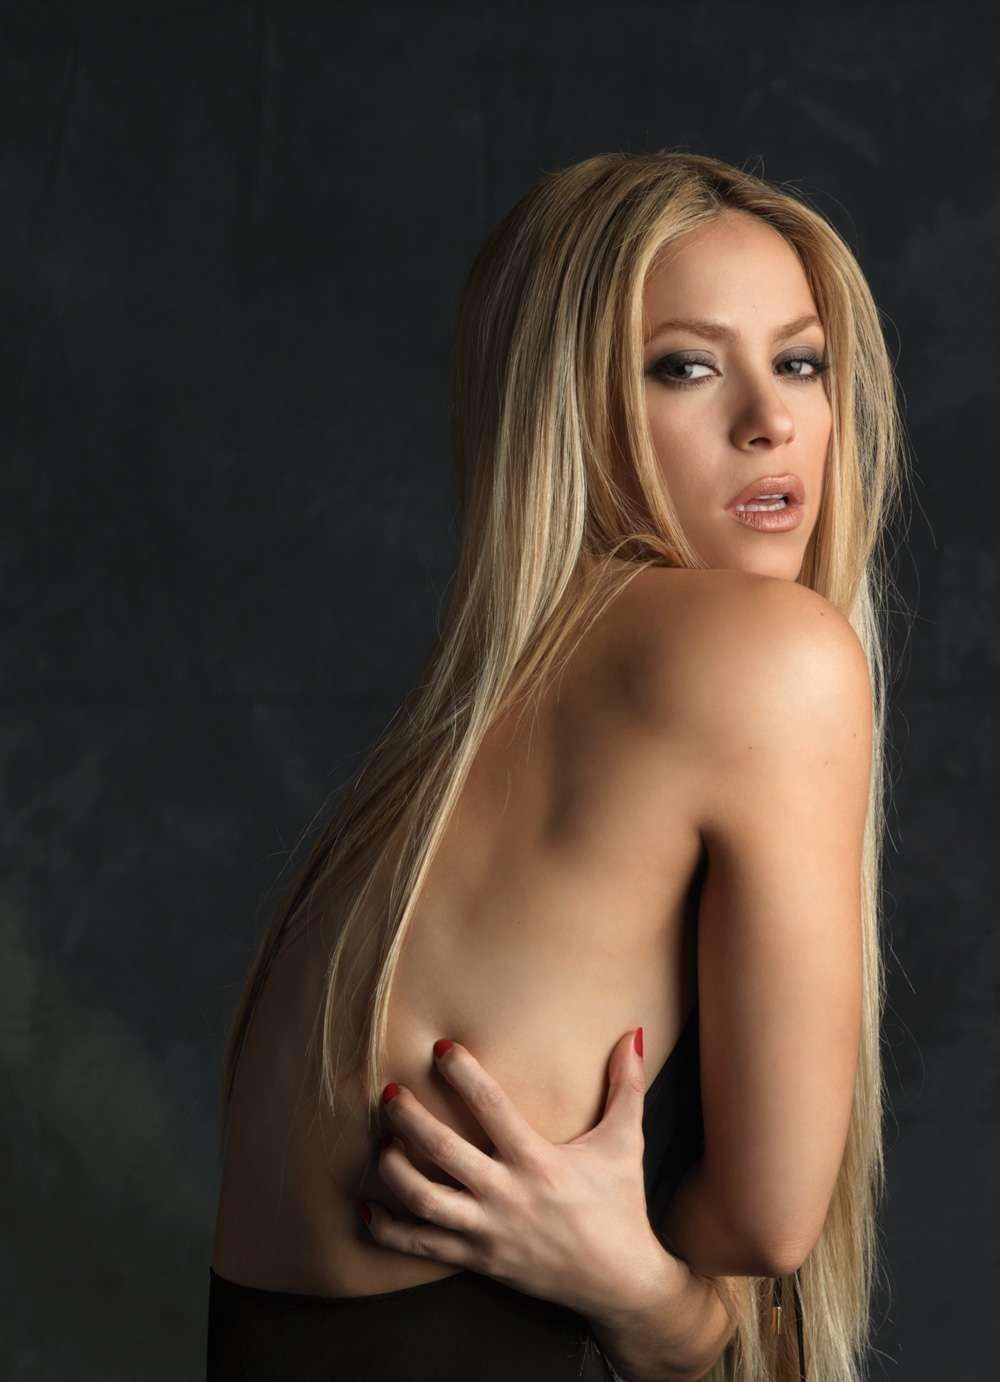 Assured it. nude shakira excellent, agree